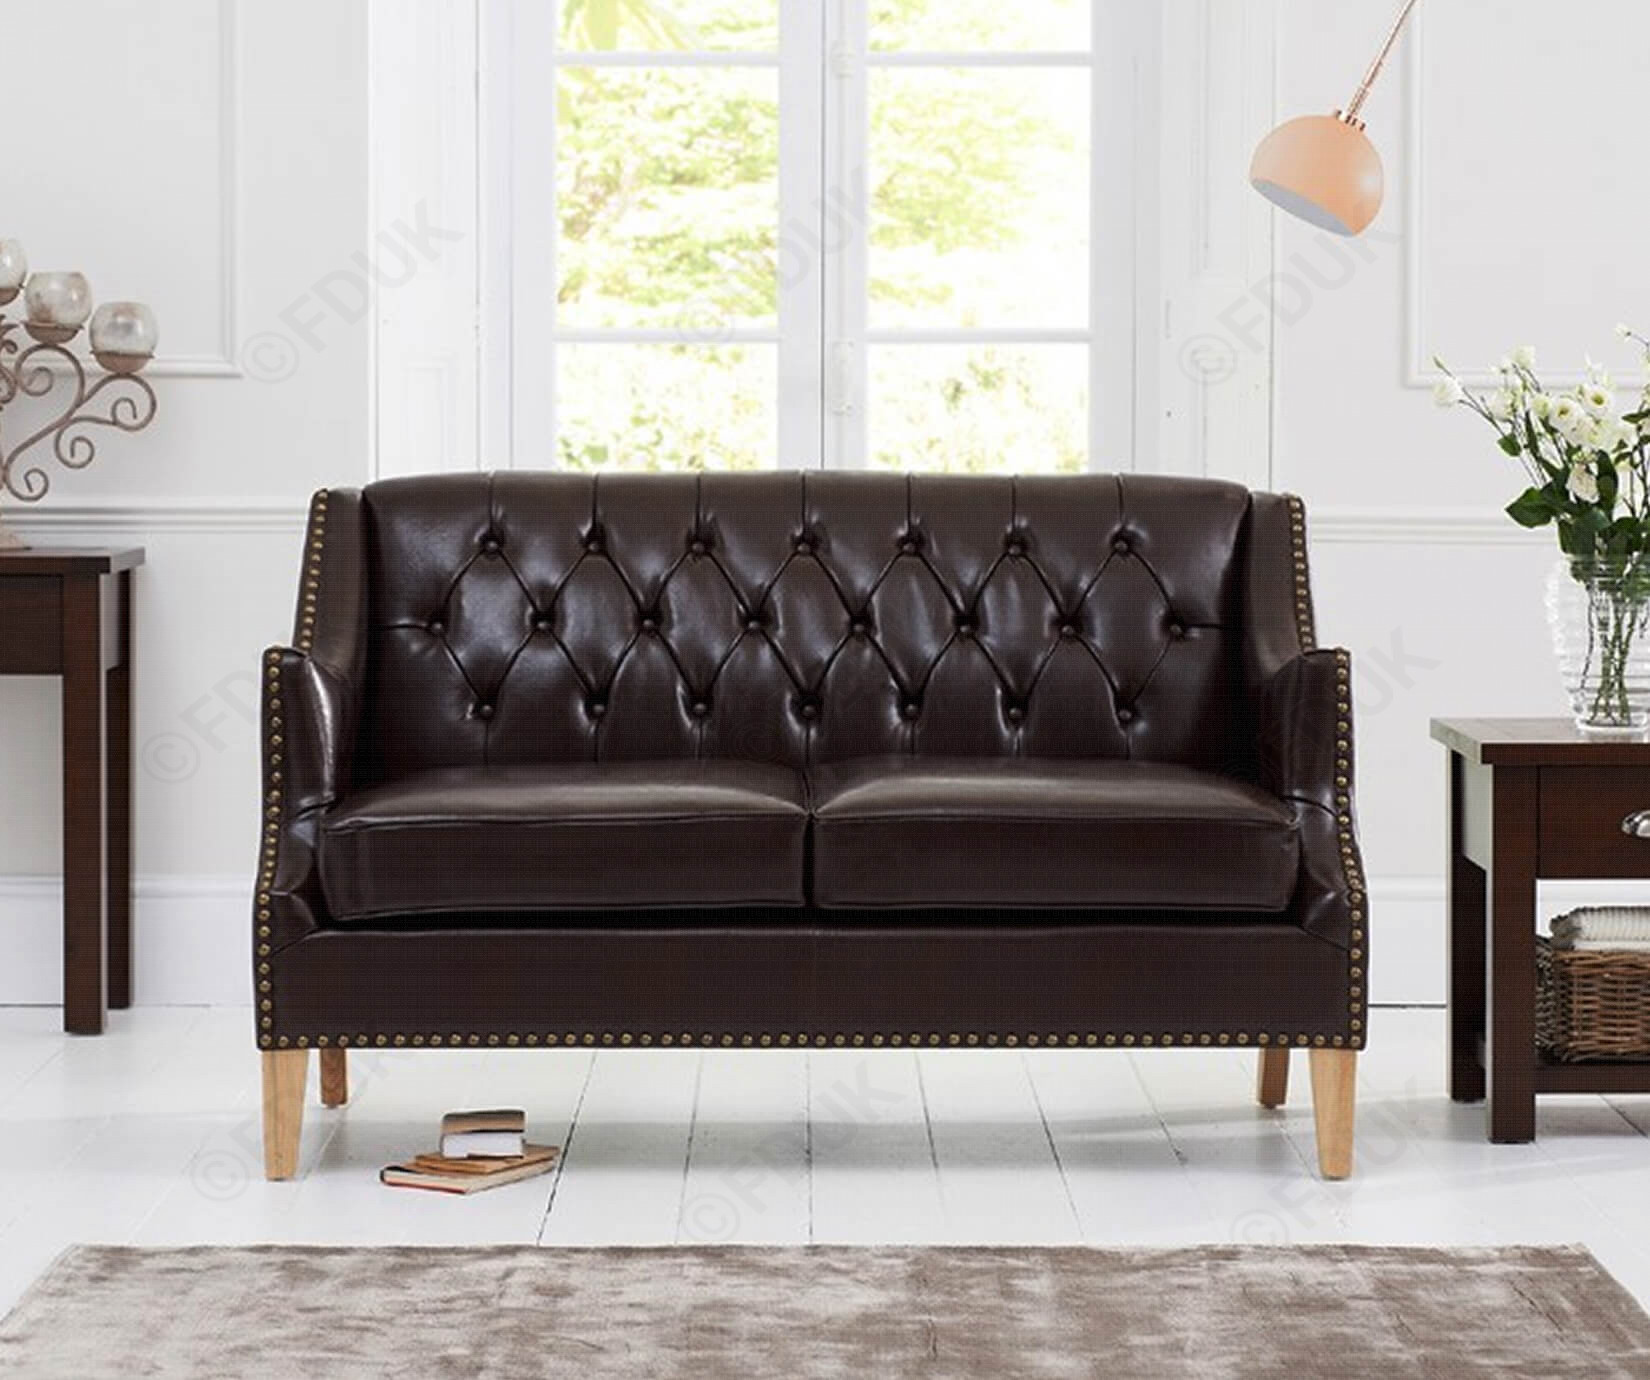 Carmen Brown Leather 2 Seater Sofa with Natural Ash Wood Legs